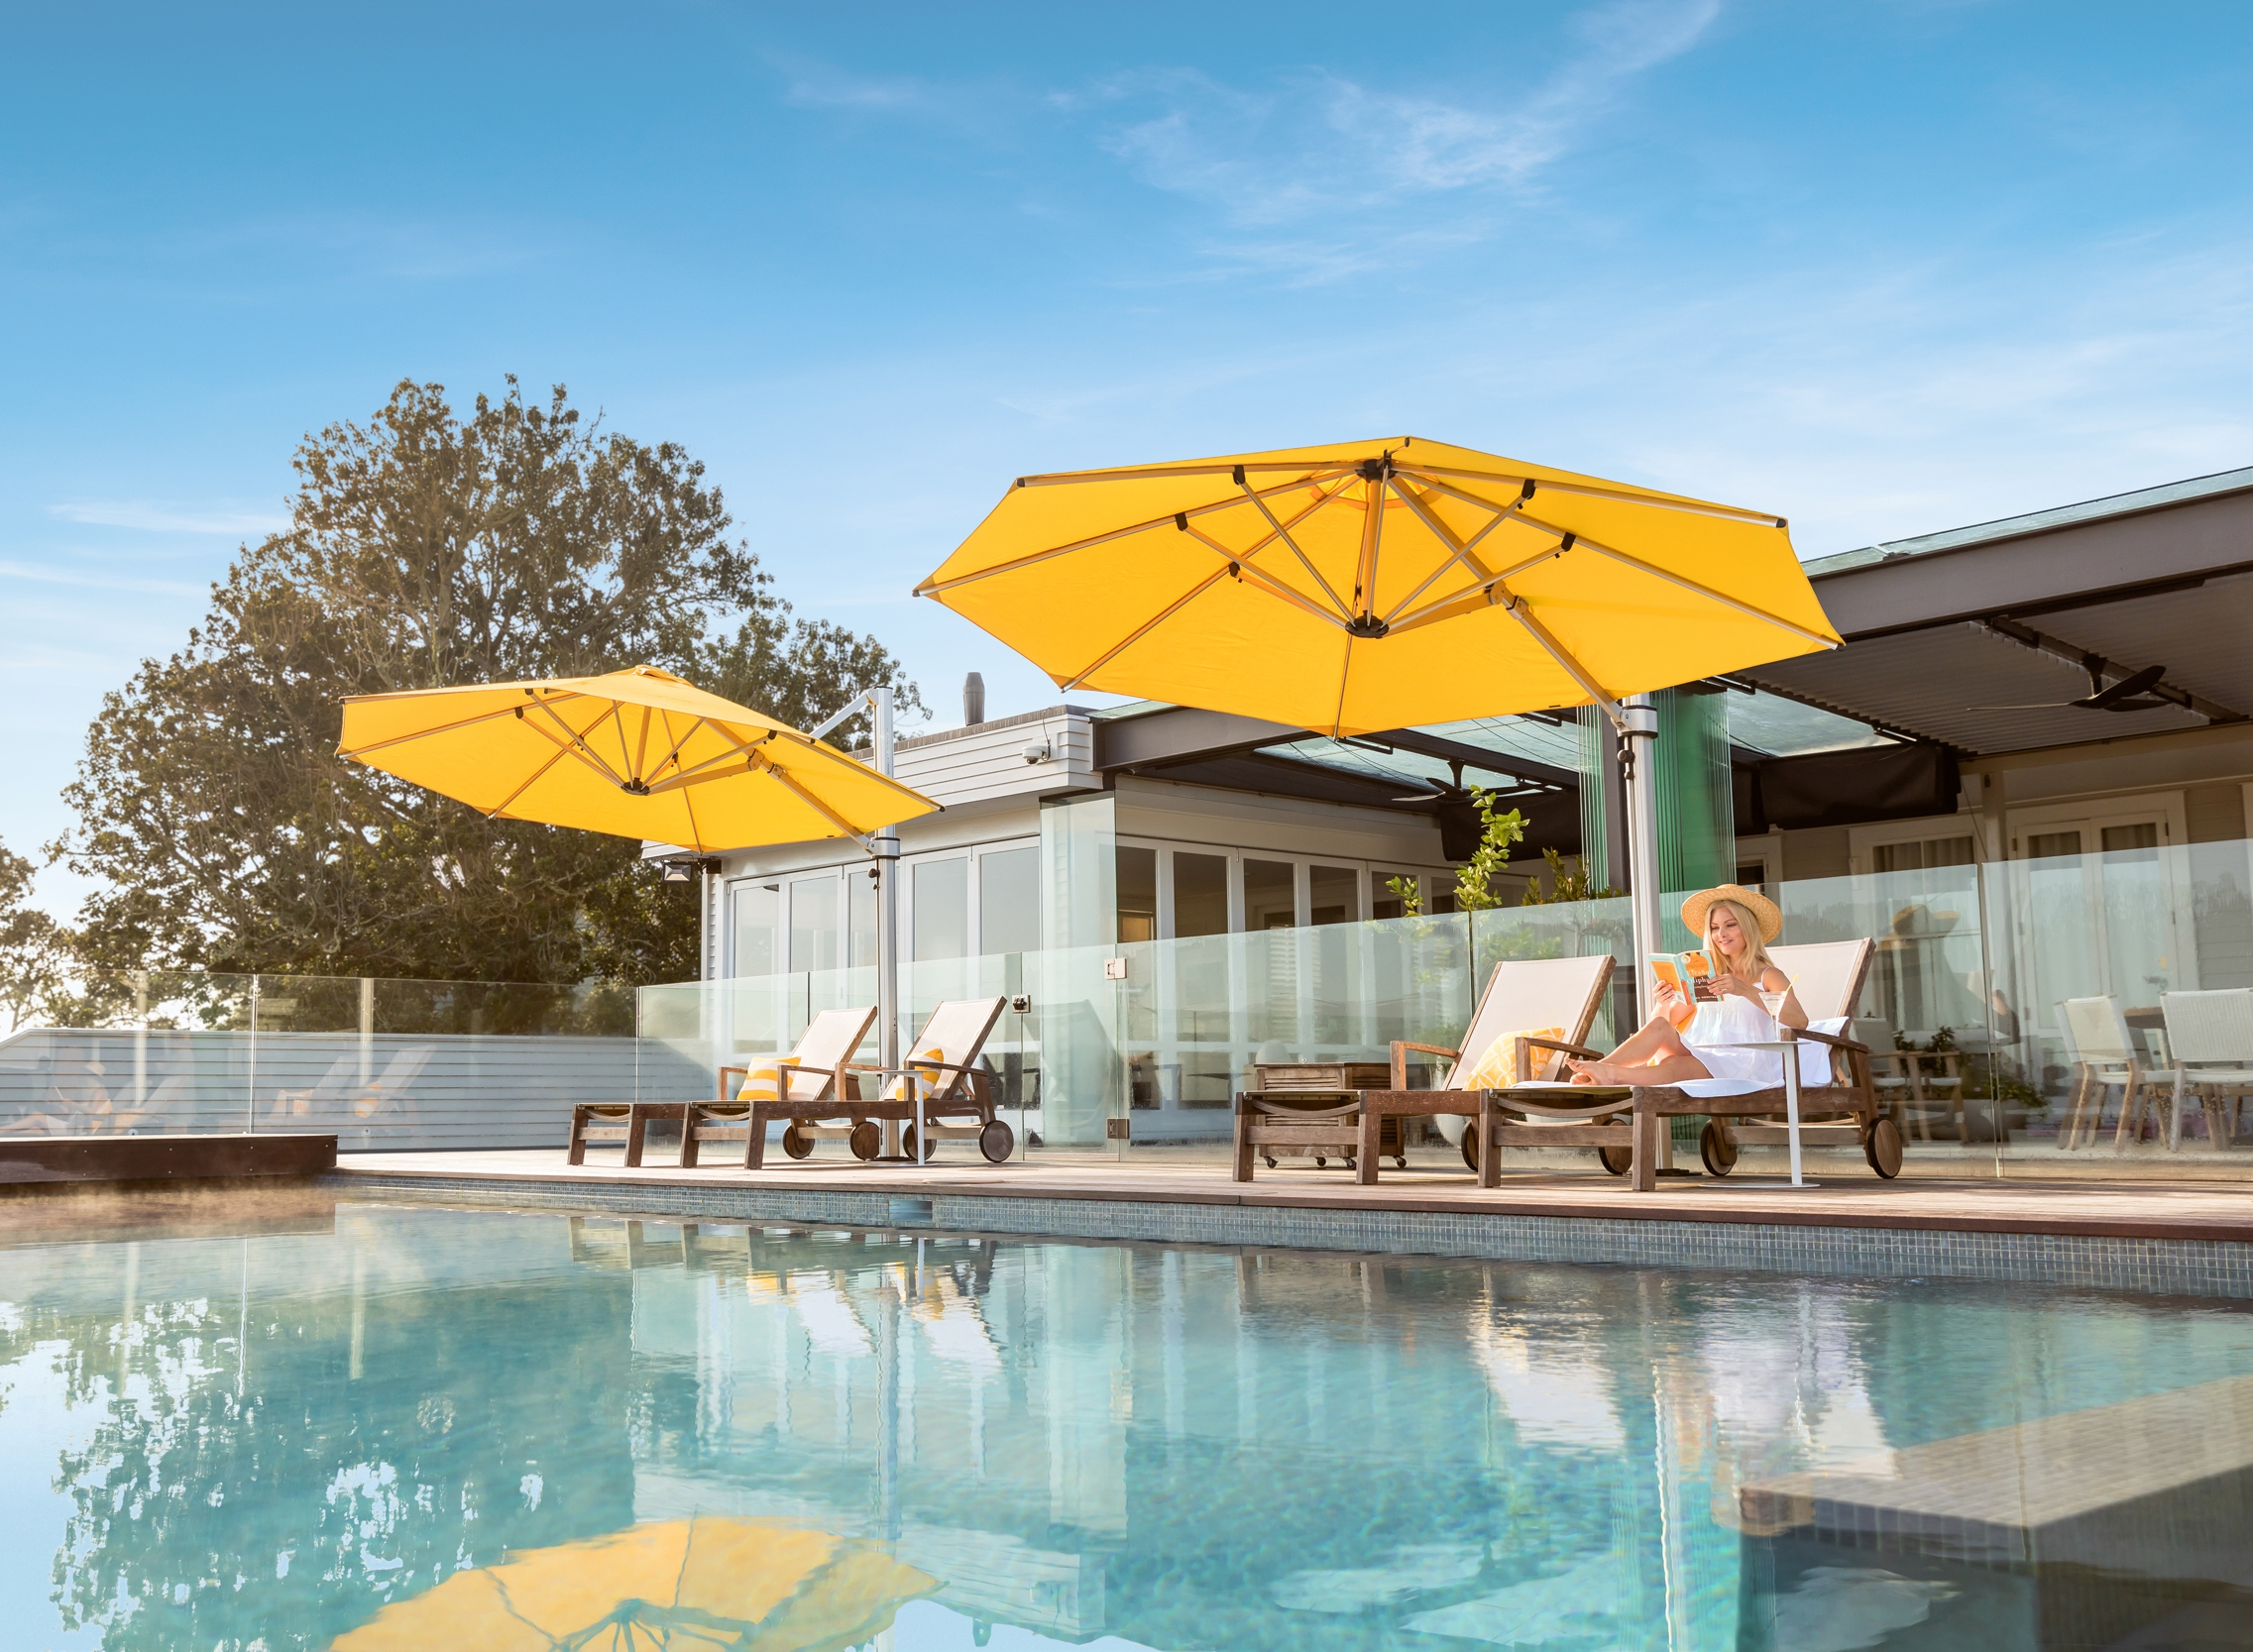 Riviera Cantilever Umbrella By Pool